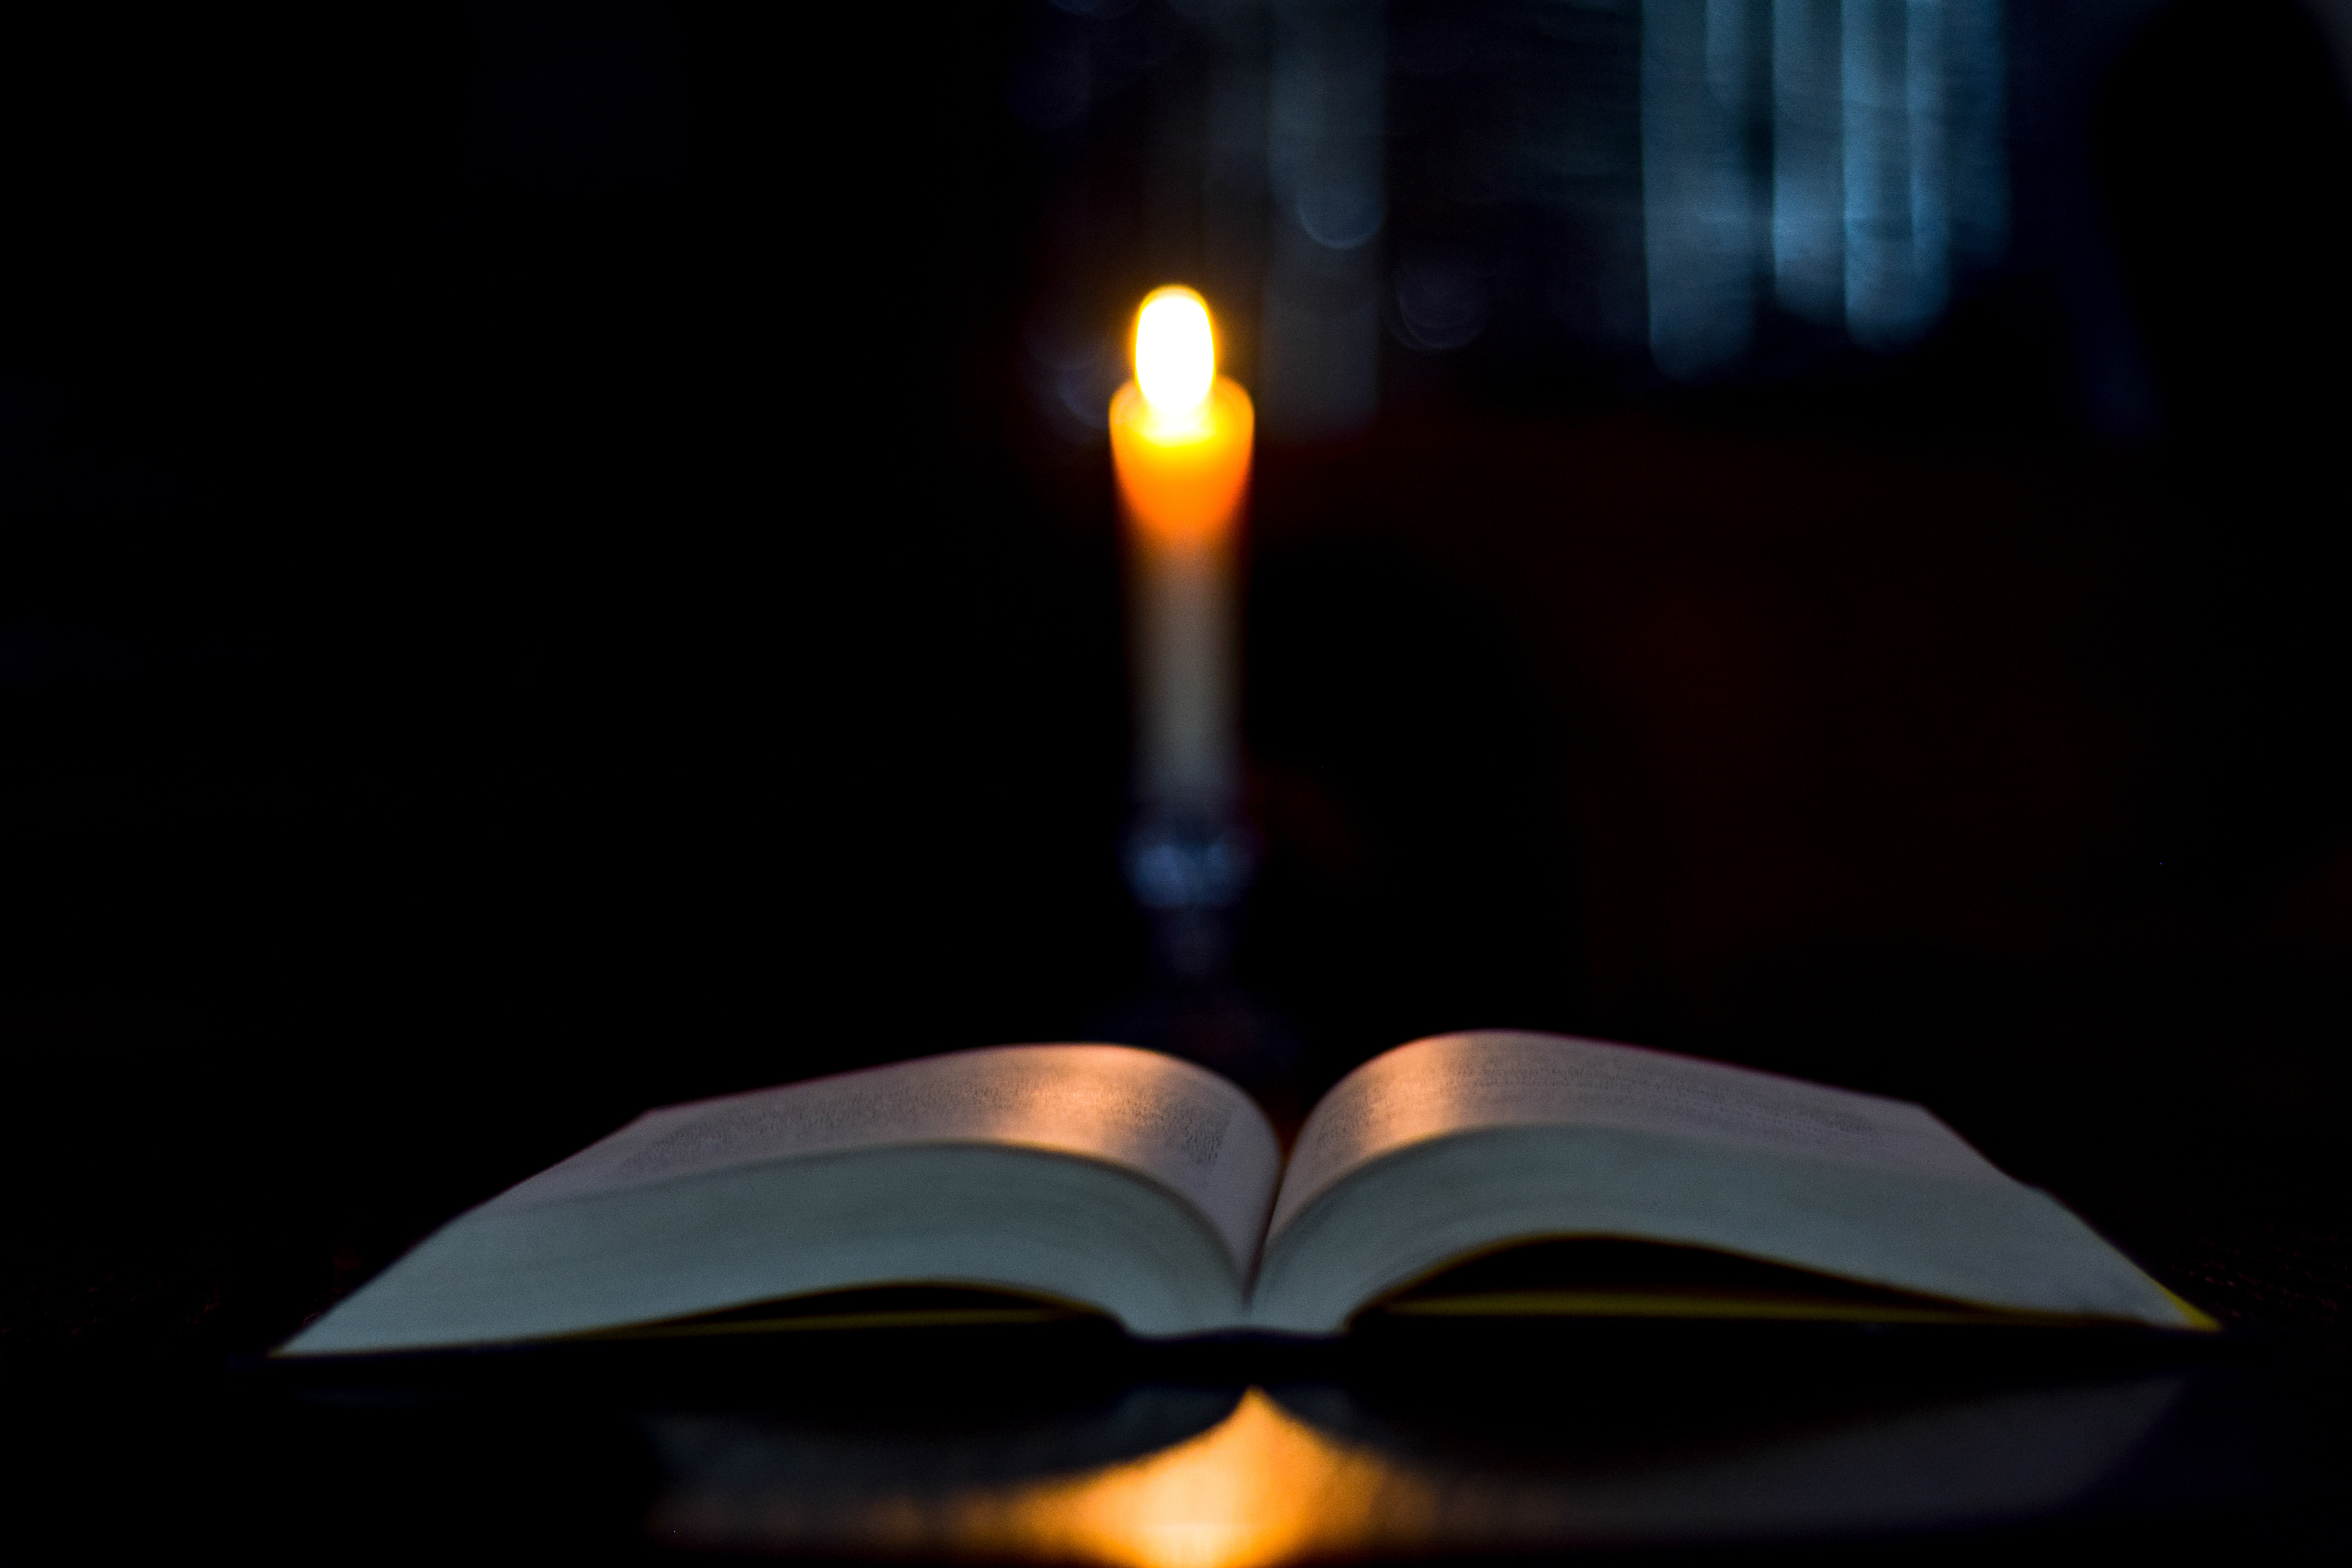 Free stock photo of Book Lit By Candlelight